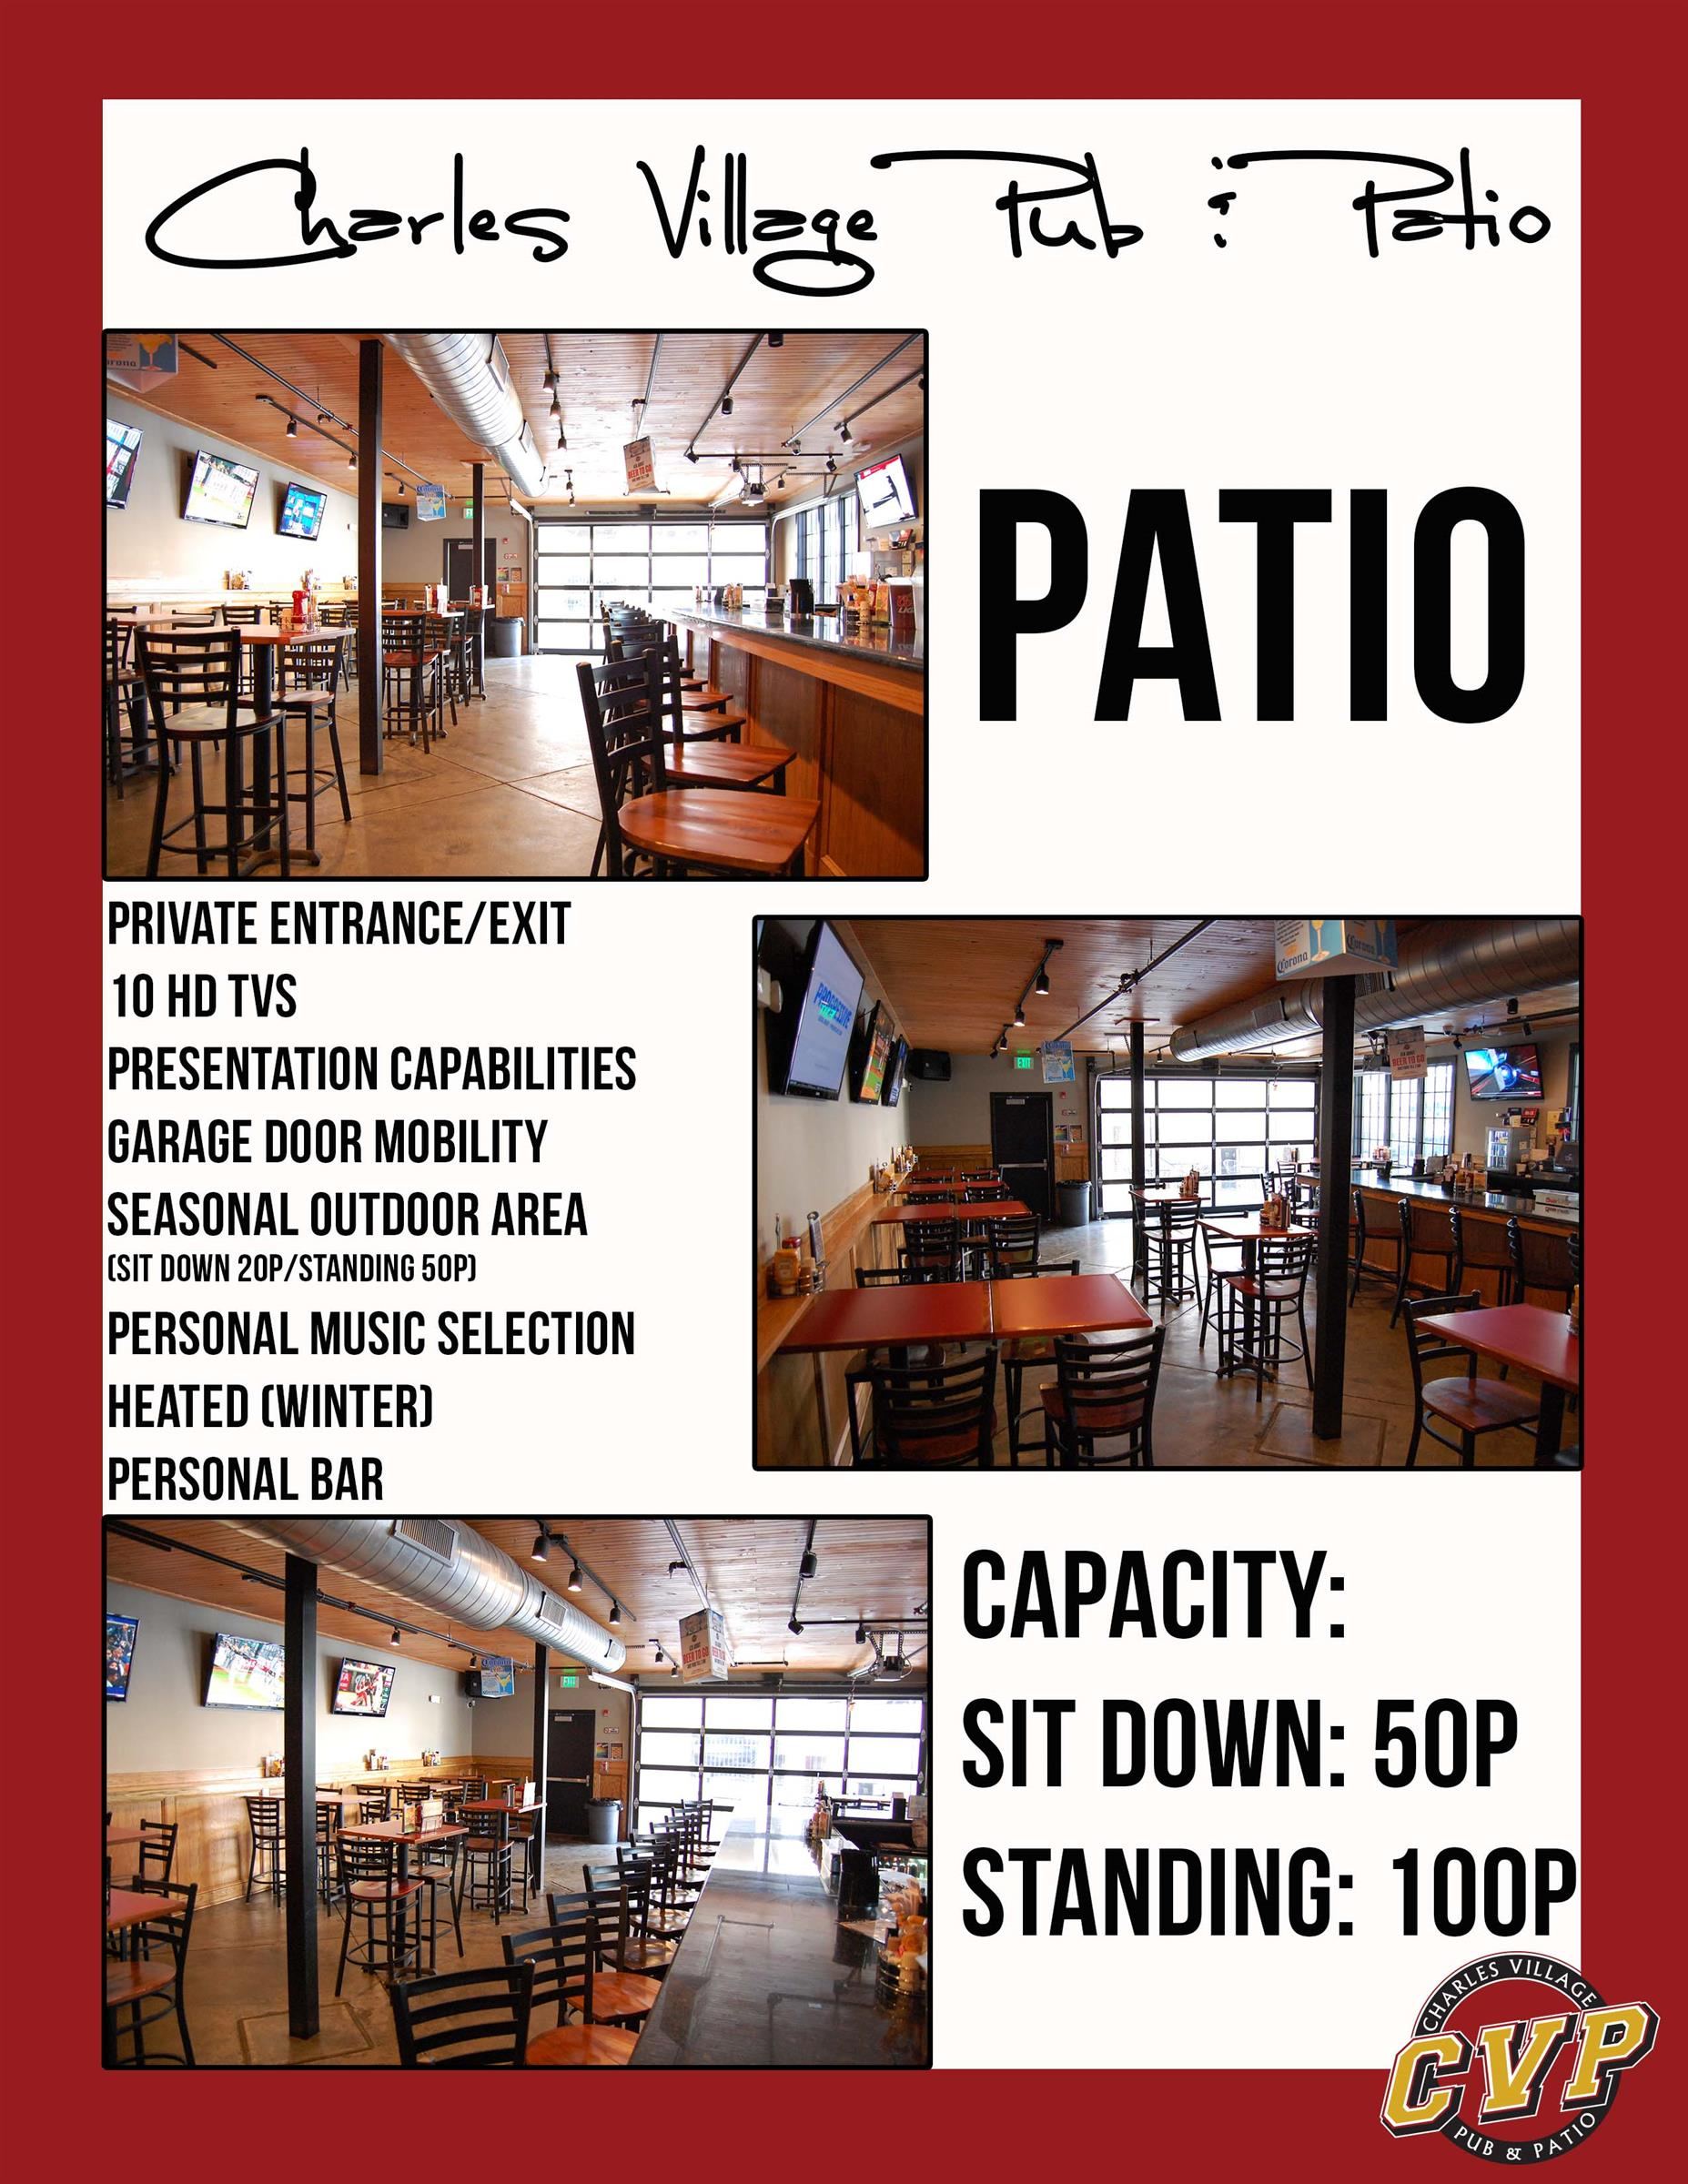 charles village pub and patio. patio private entrance/exit 10 hd tvs presentation capabilities garage door mobility seasonal outdoor area(sit down 20p/standing 50p) personal music selection heated (winter) personal bar. capacity: sit down: 50p standing; 100p